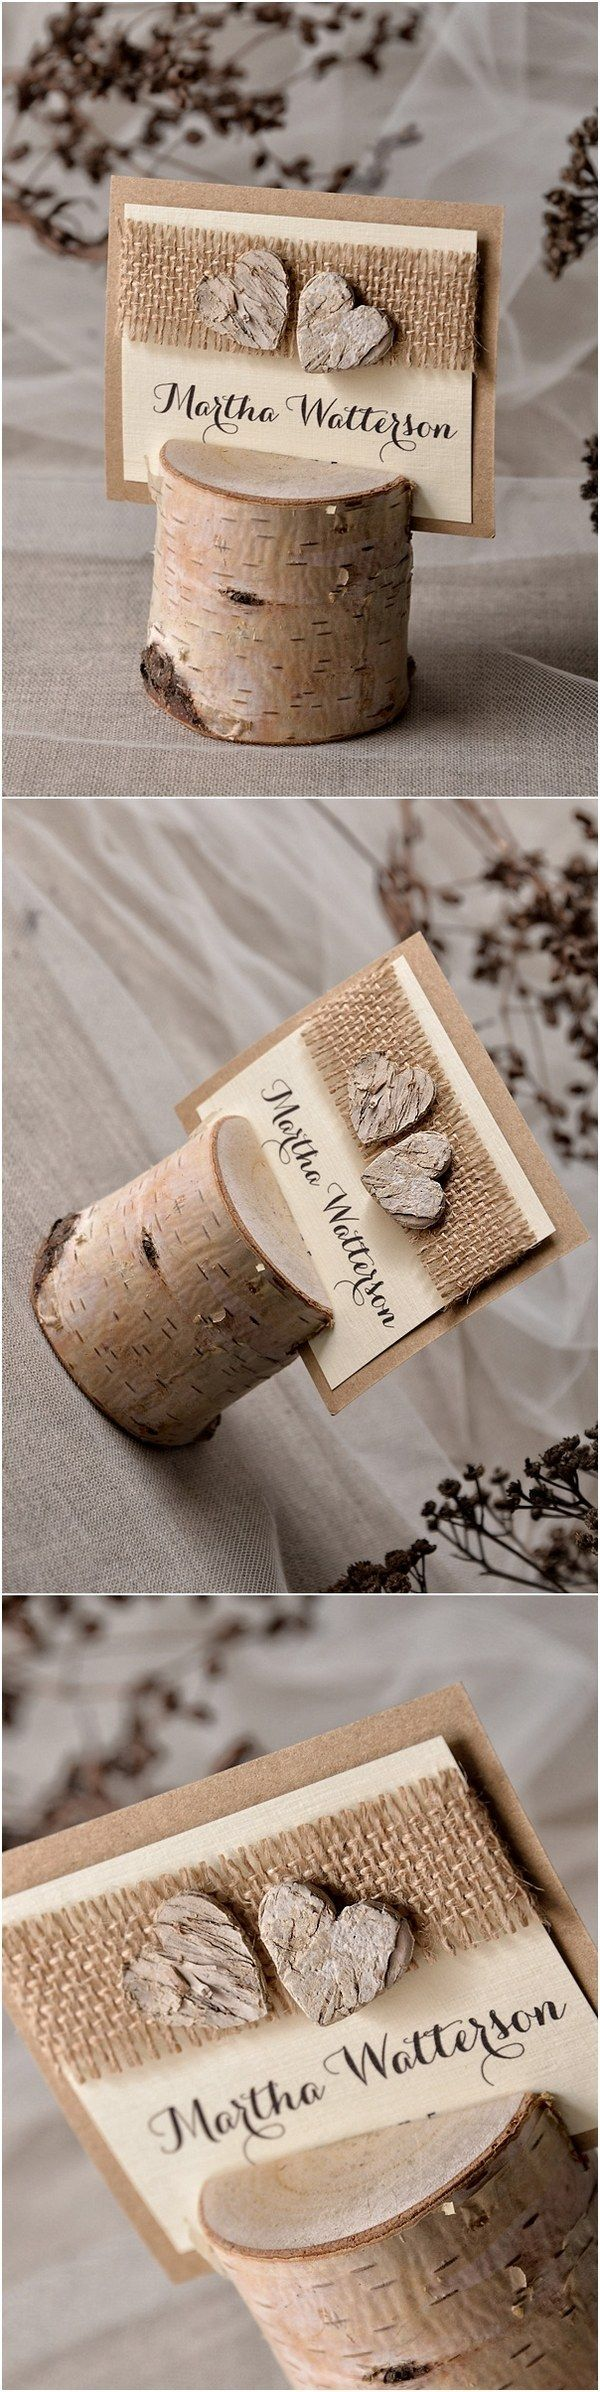 Rustic wedding rustic country burlap and birch real wood wedding